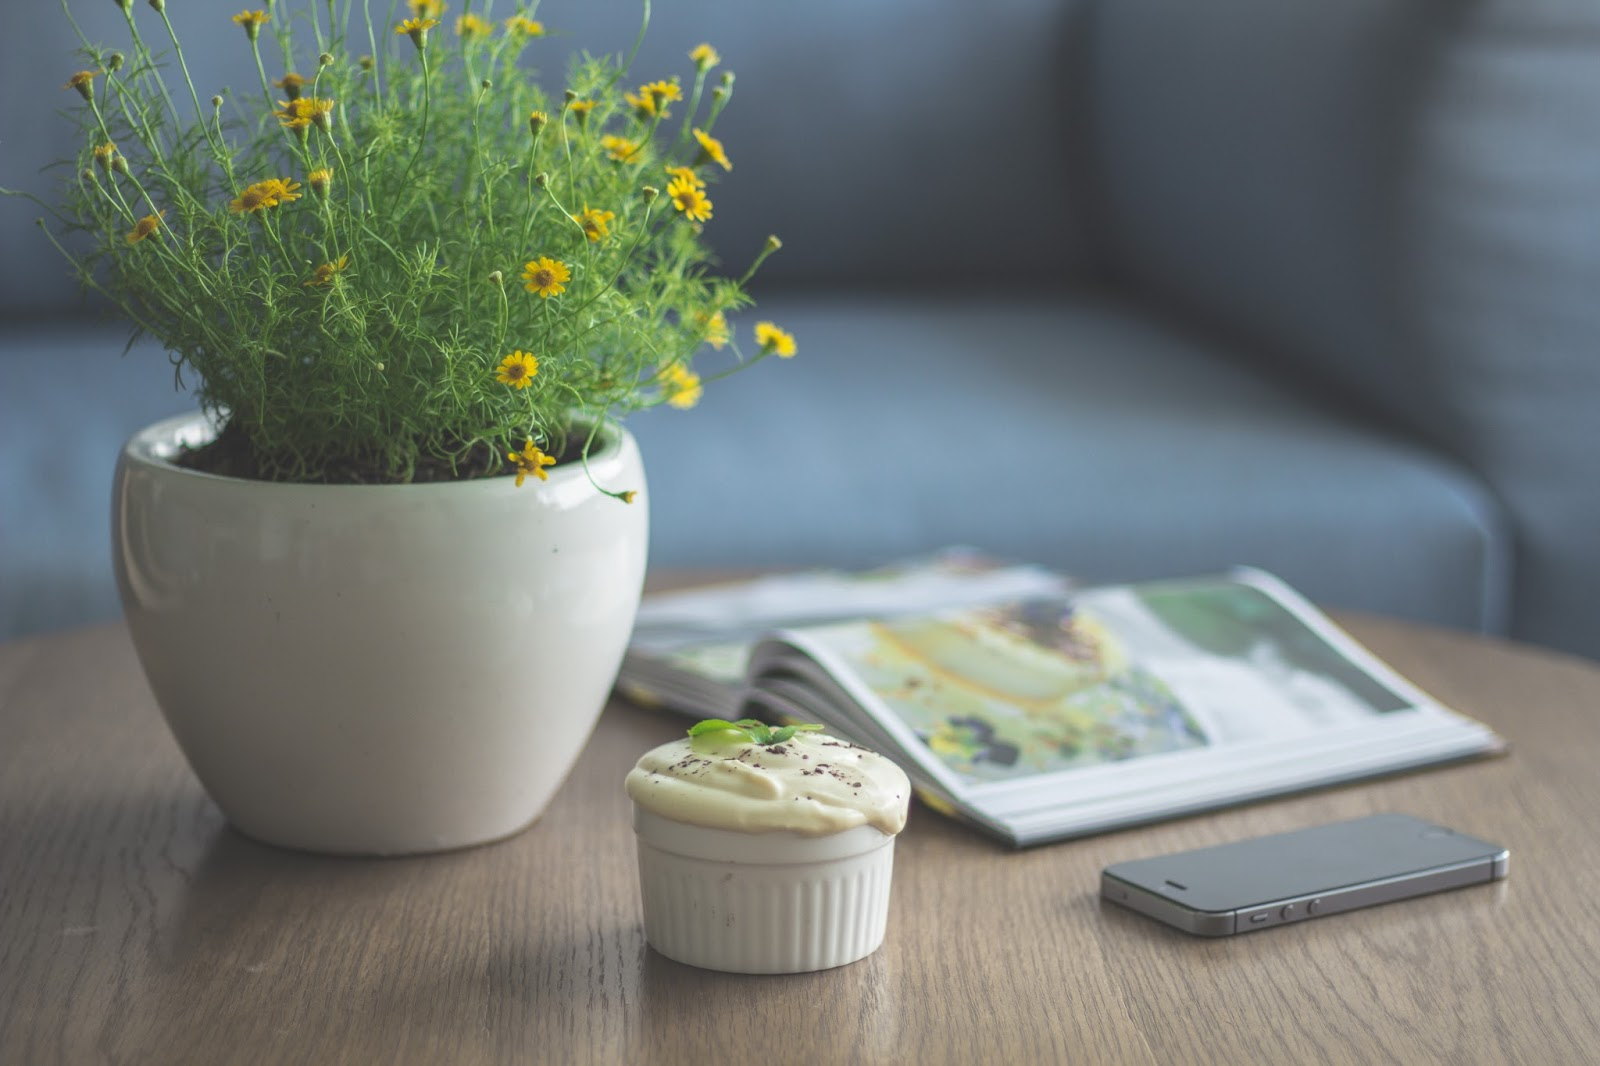 plant pot, dessert, book and mobile phone on table